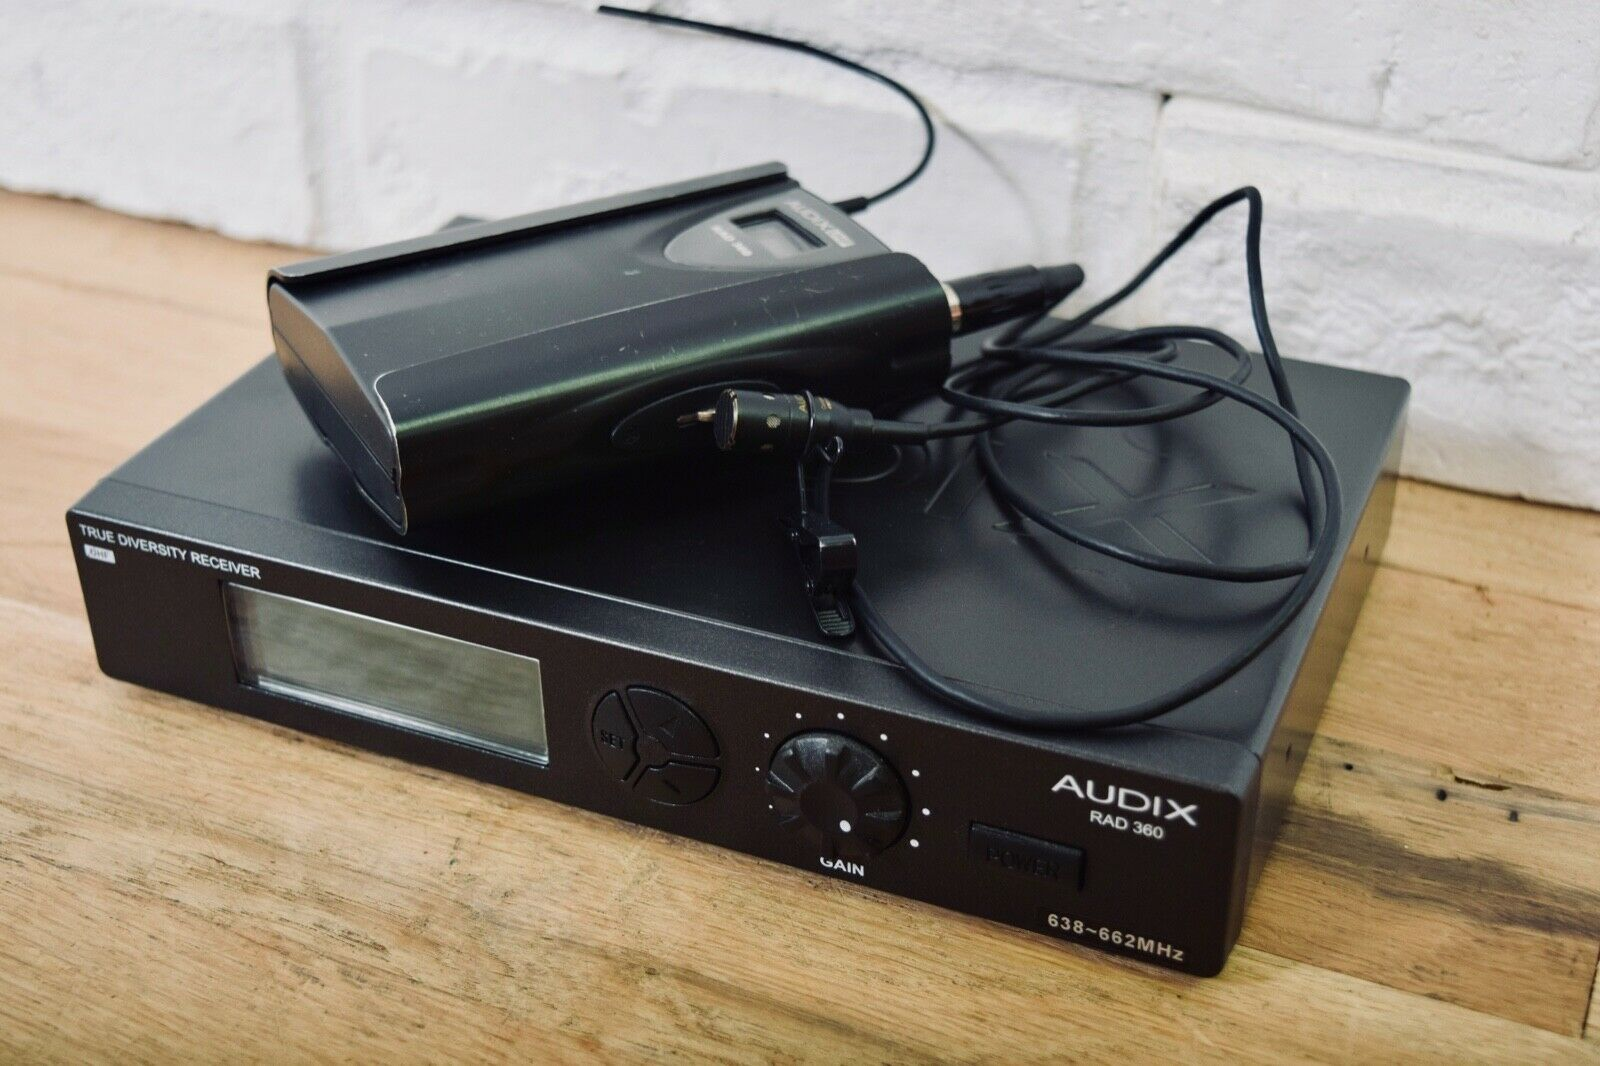 Audix RAD 360 wireless microphone system with Lapel mic 638-662 mhz excellent